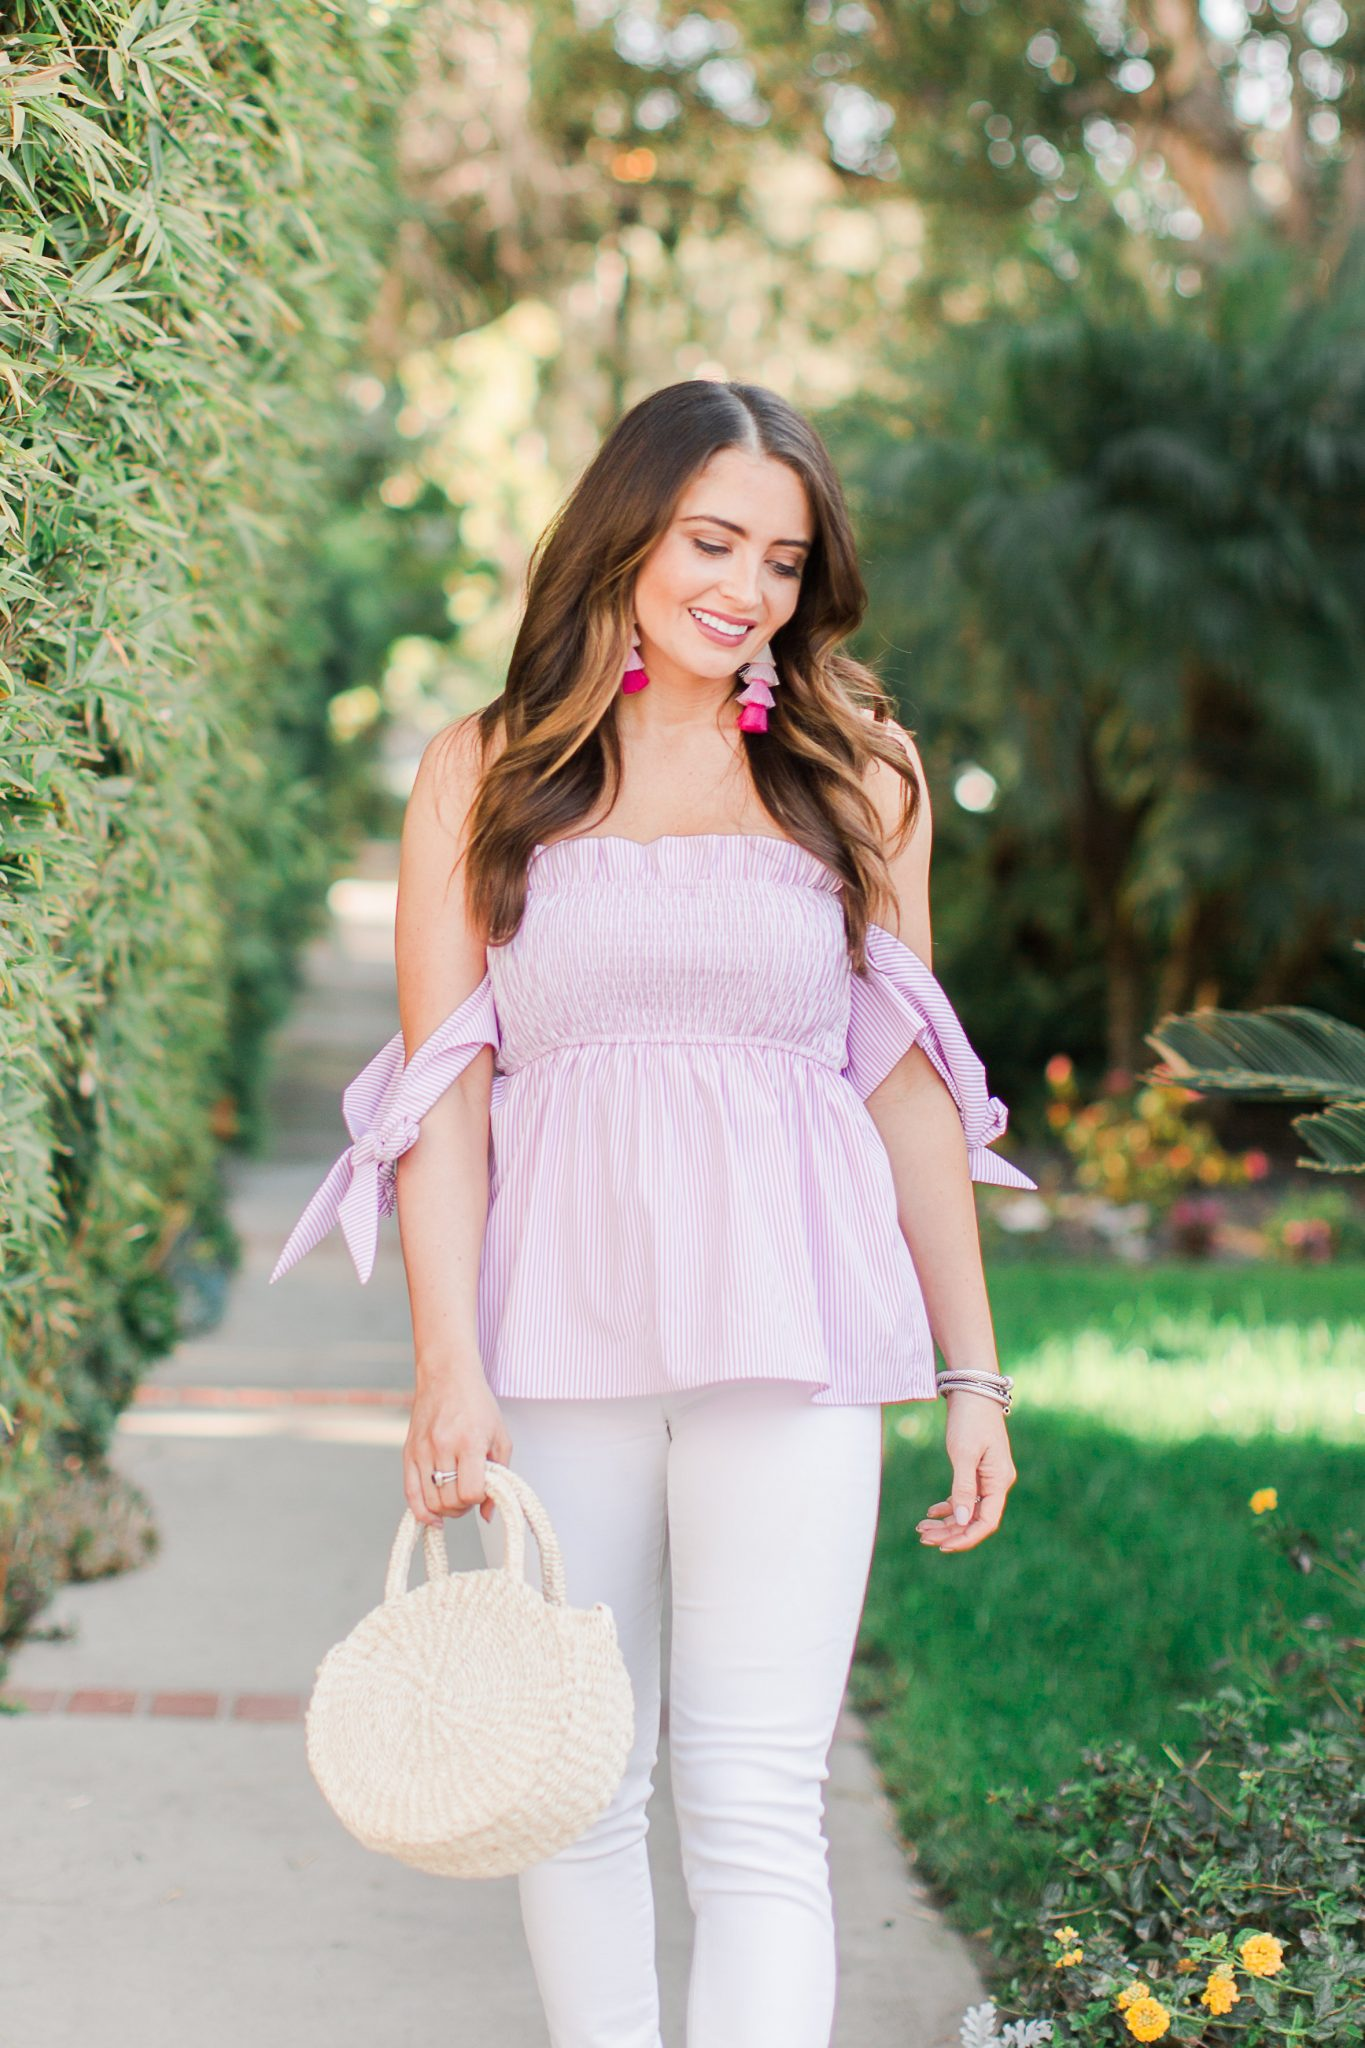 Pink off the shoulder top with white jeans and Clare V bag - Shopbop Sale Spring Picks featured by popular Orange County fashion blogger, Maxie Elle